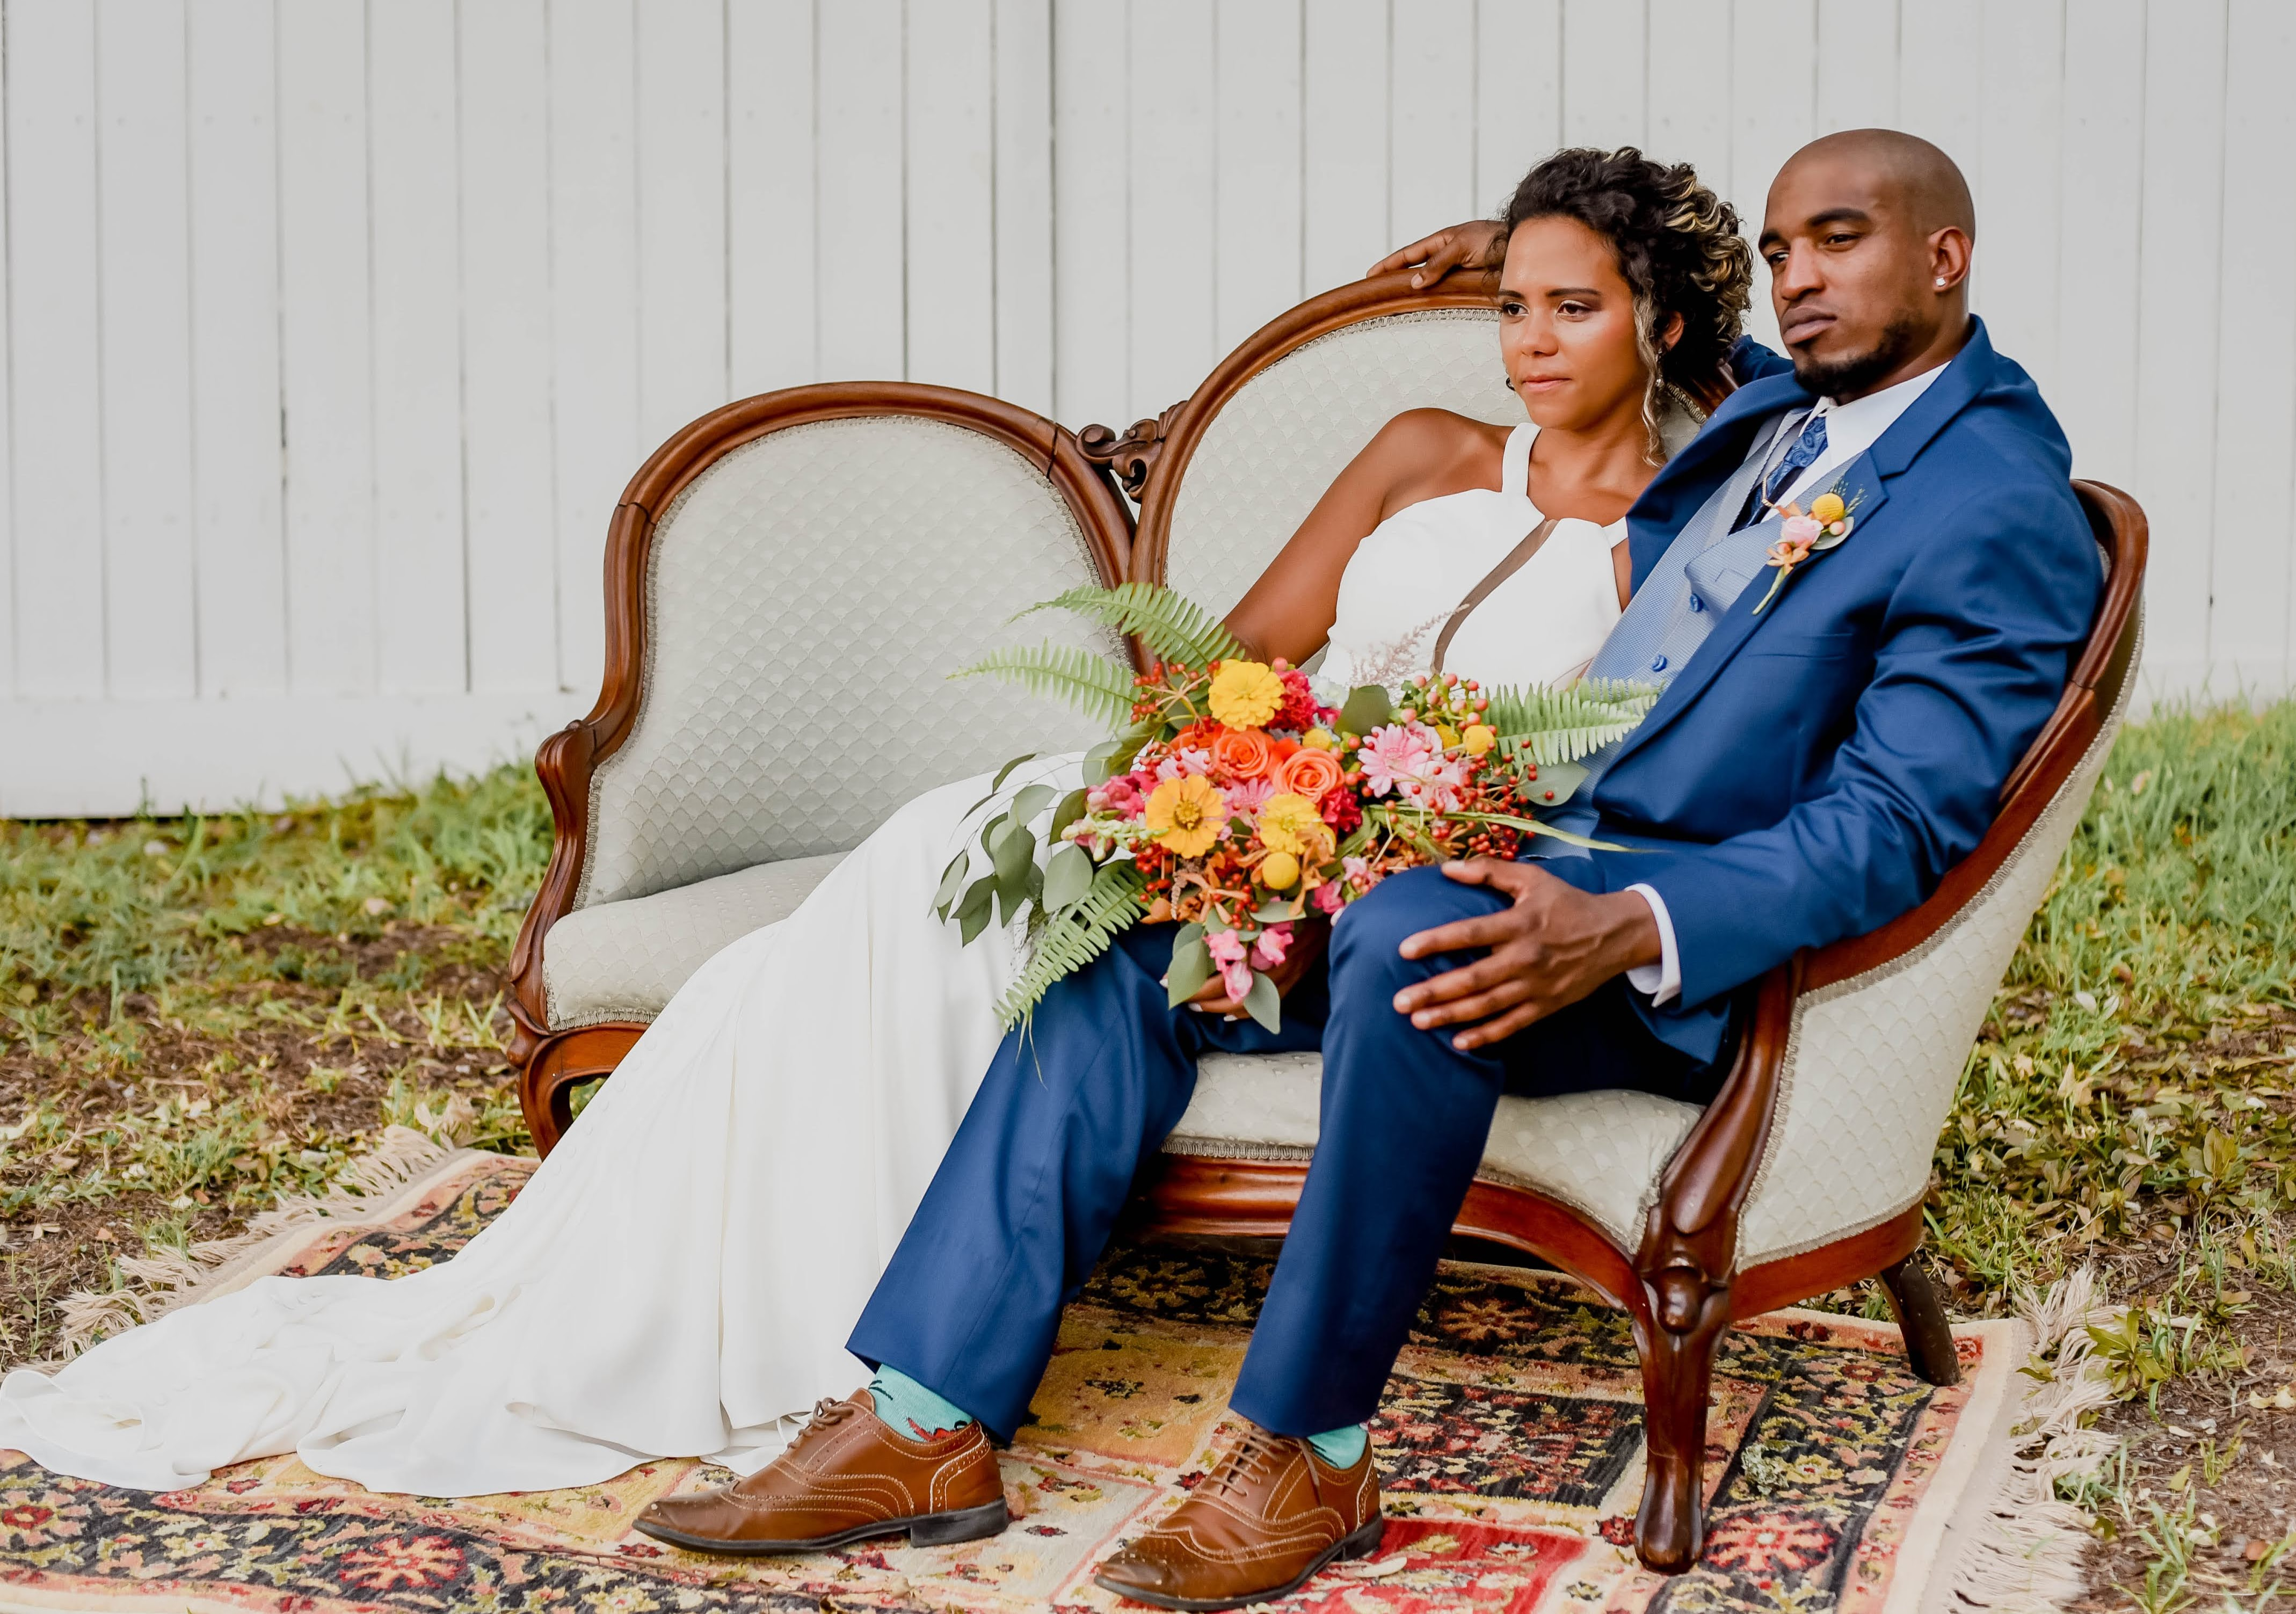 Hen House Photo Couple sitting on Settee Southport Wedding Elopement Package Wedding Lounge Furnitur